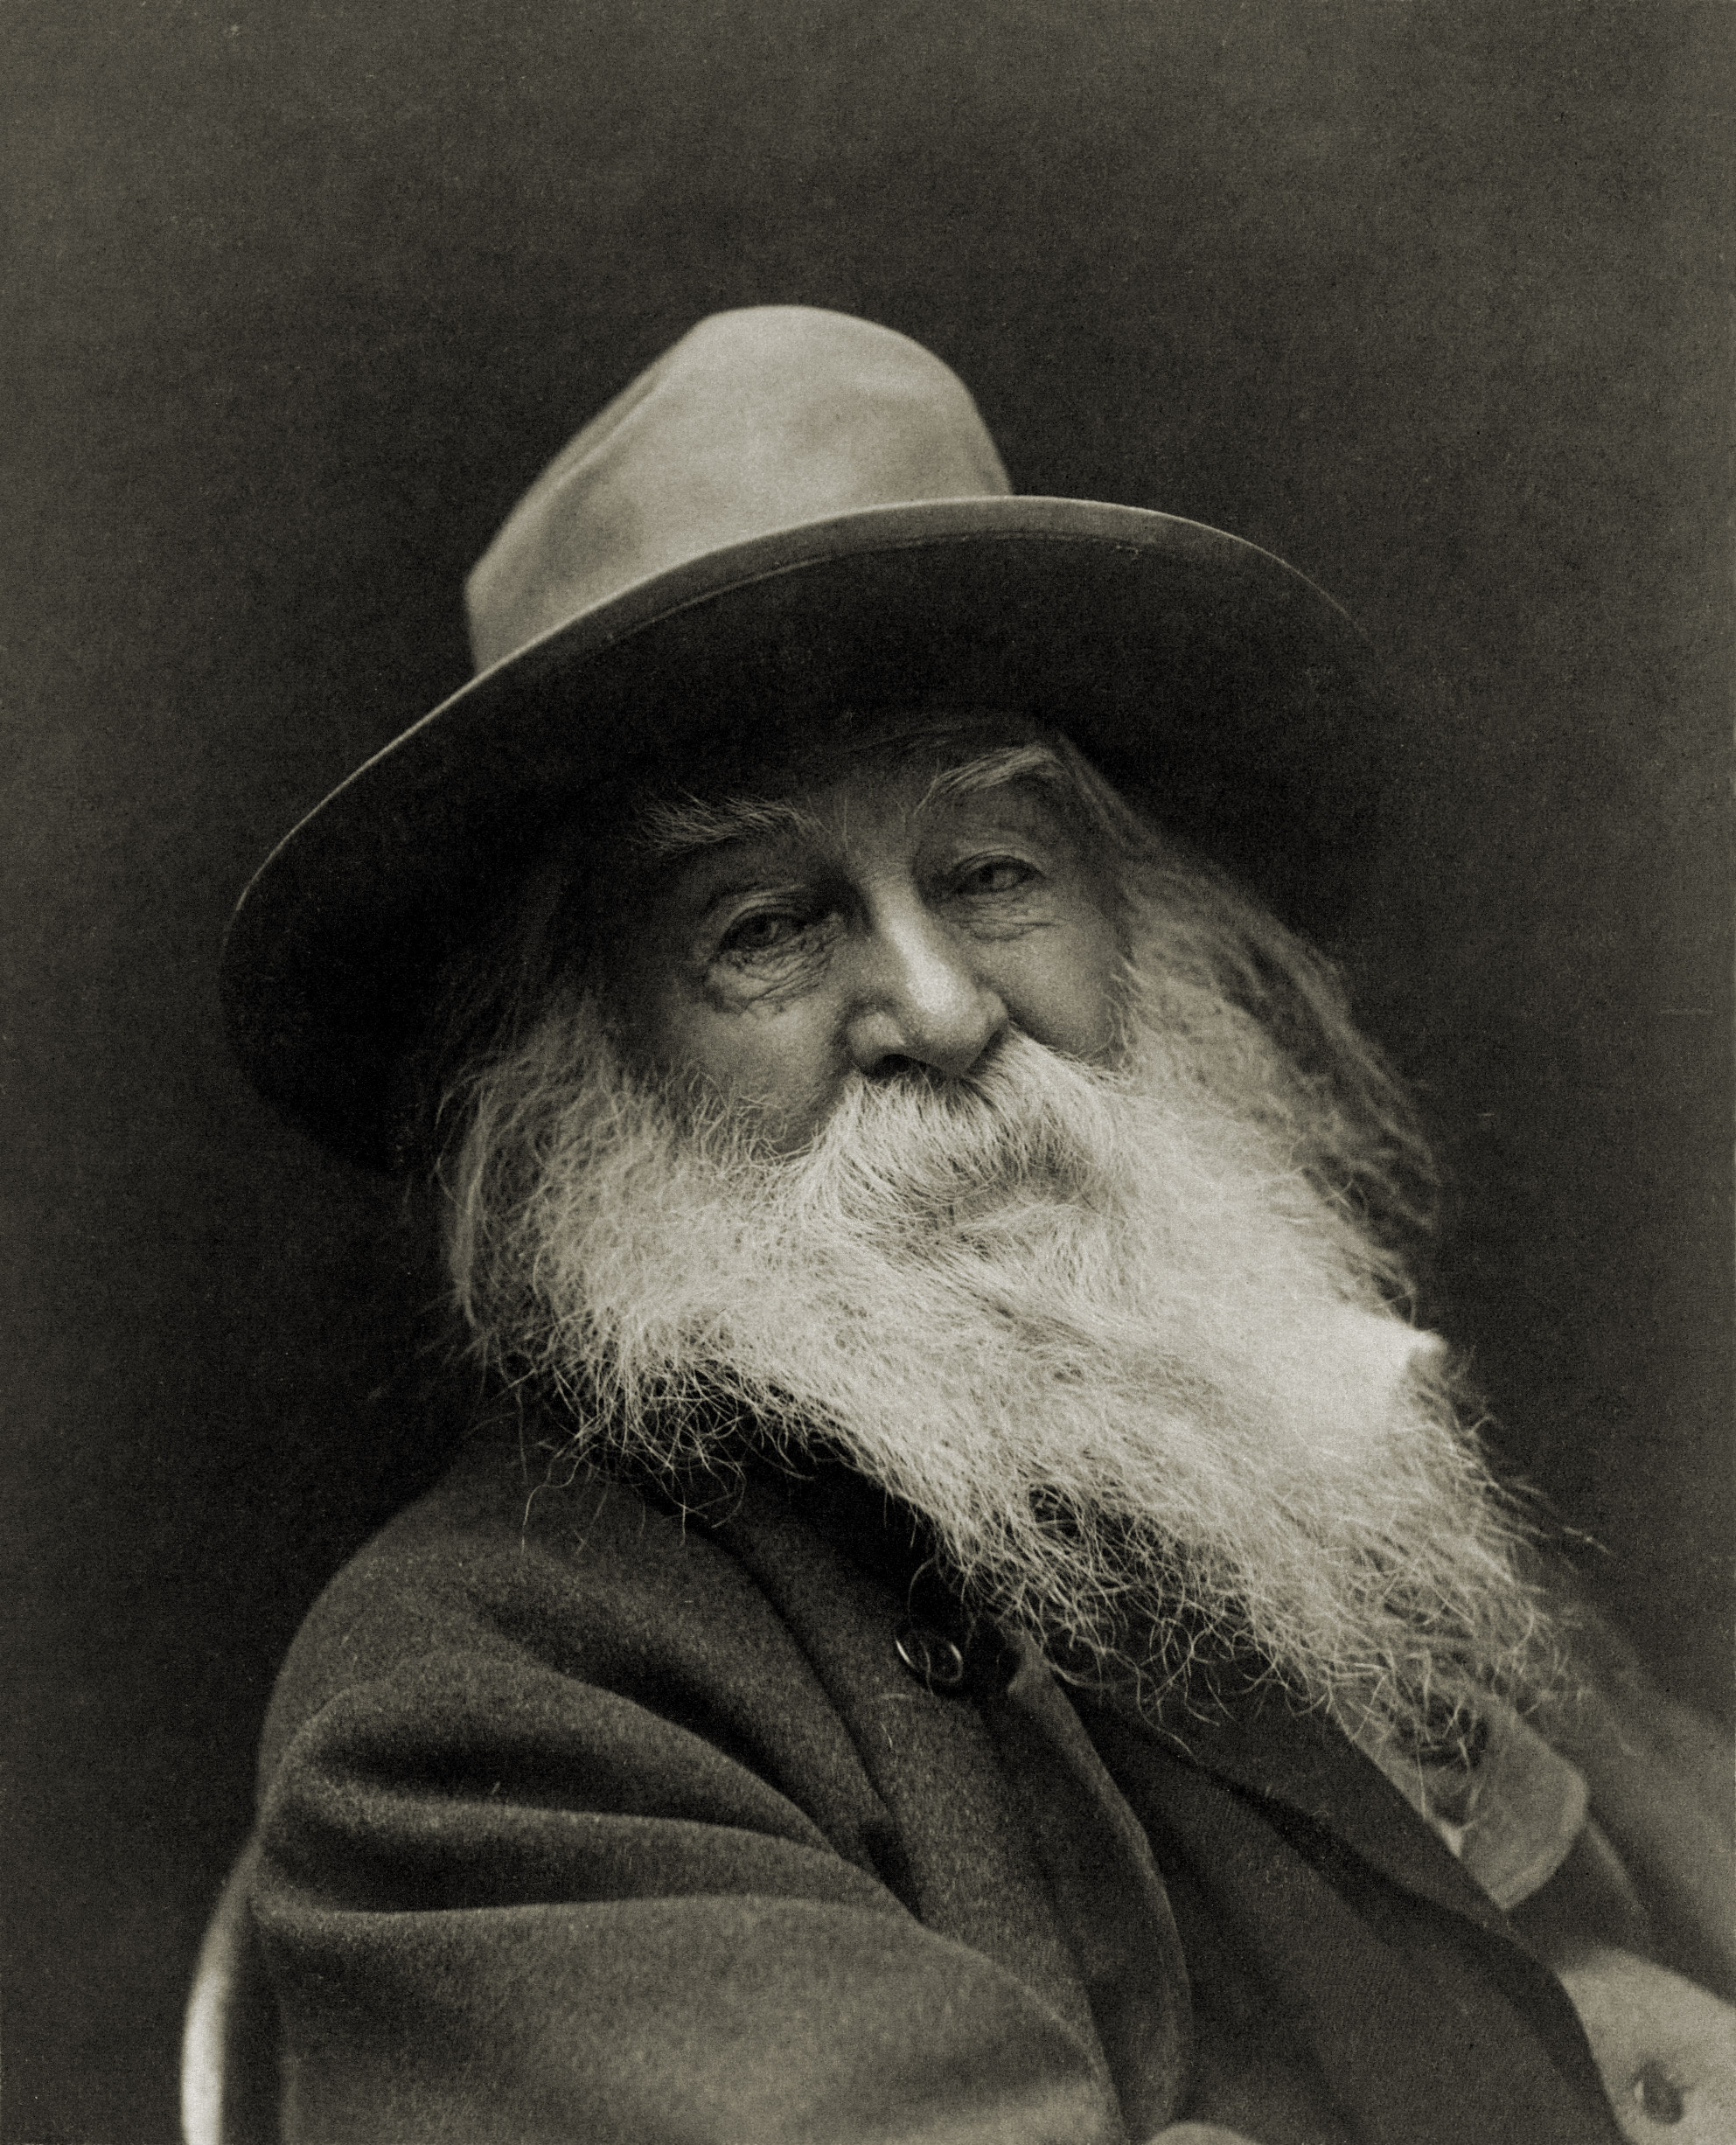 walt whitman and transcendentalism essay Walt whitman is america's most renowned, most influential, and many say its greatest, poet ever he spent his life writing endless prose essays and one book of poetry, his masterpiece.